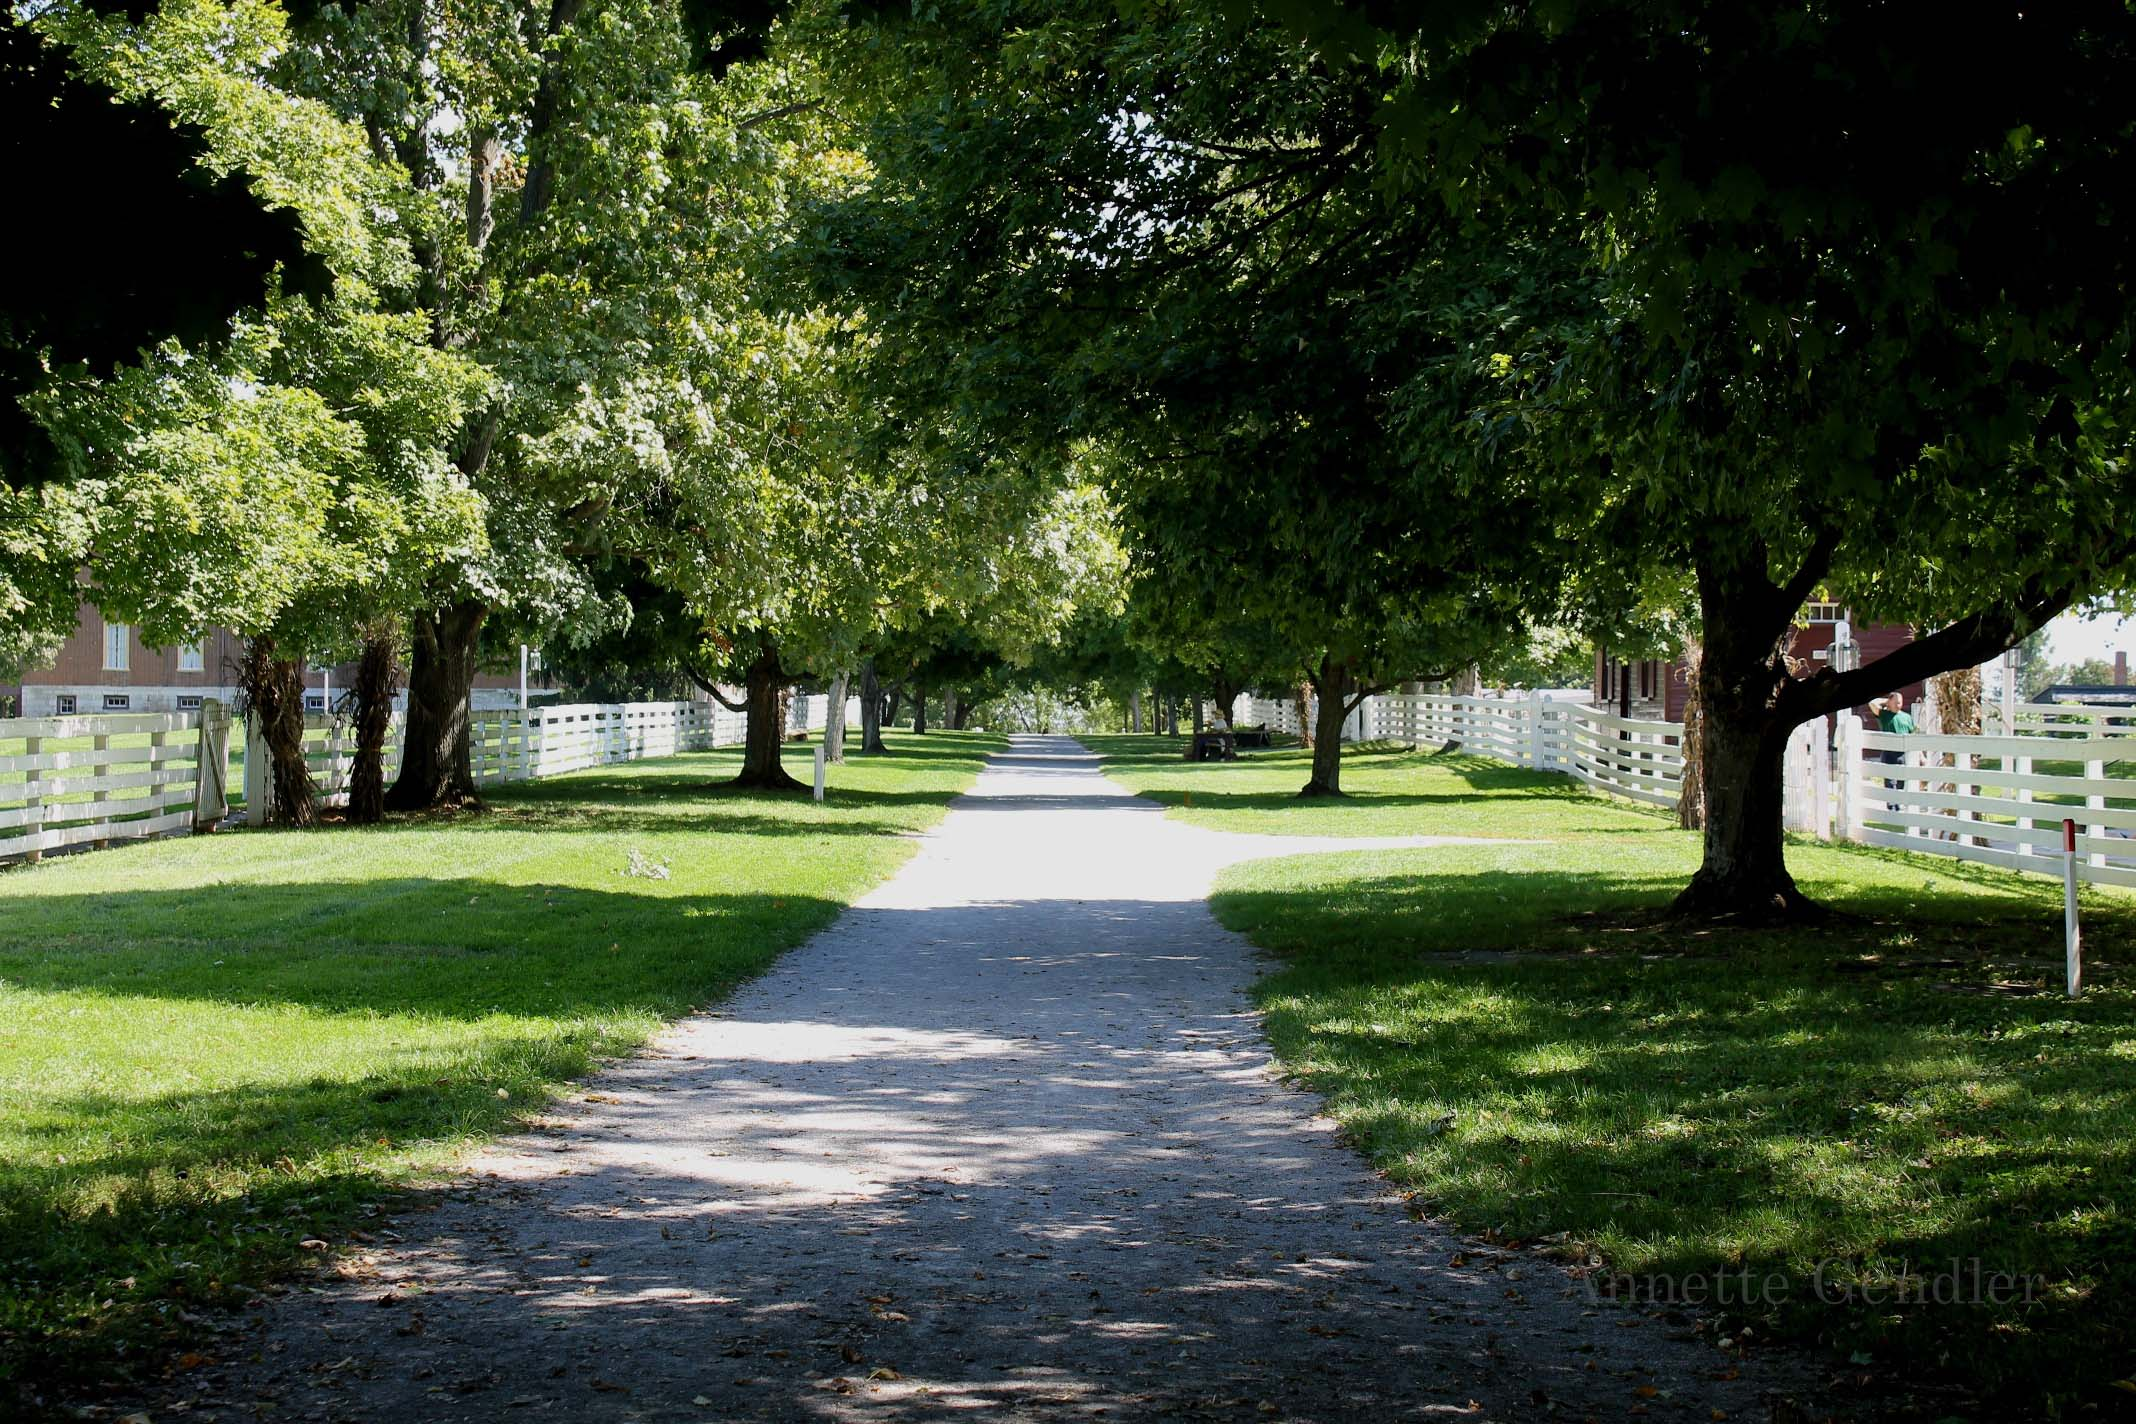 gravel path with green trees on both sides in Shaker Village